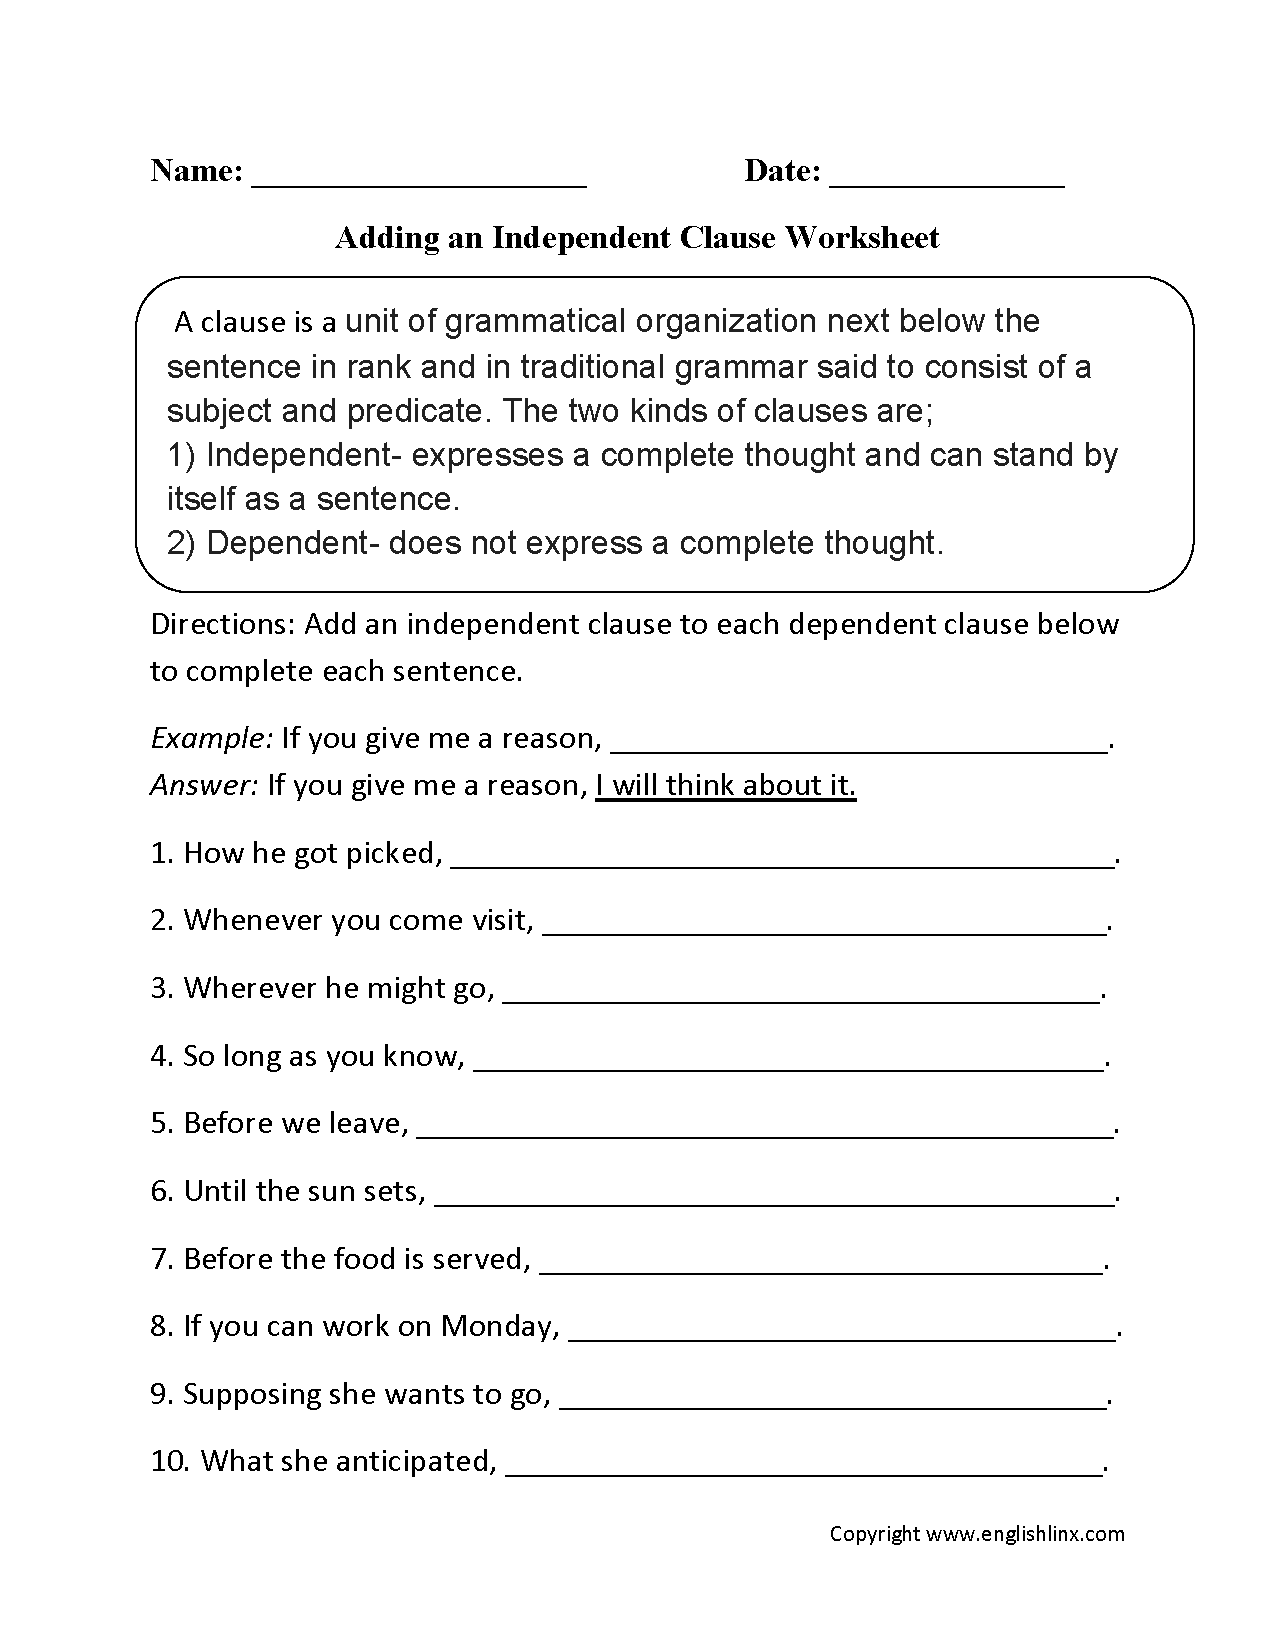 Adding An Inependent Clause Worksheet